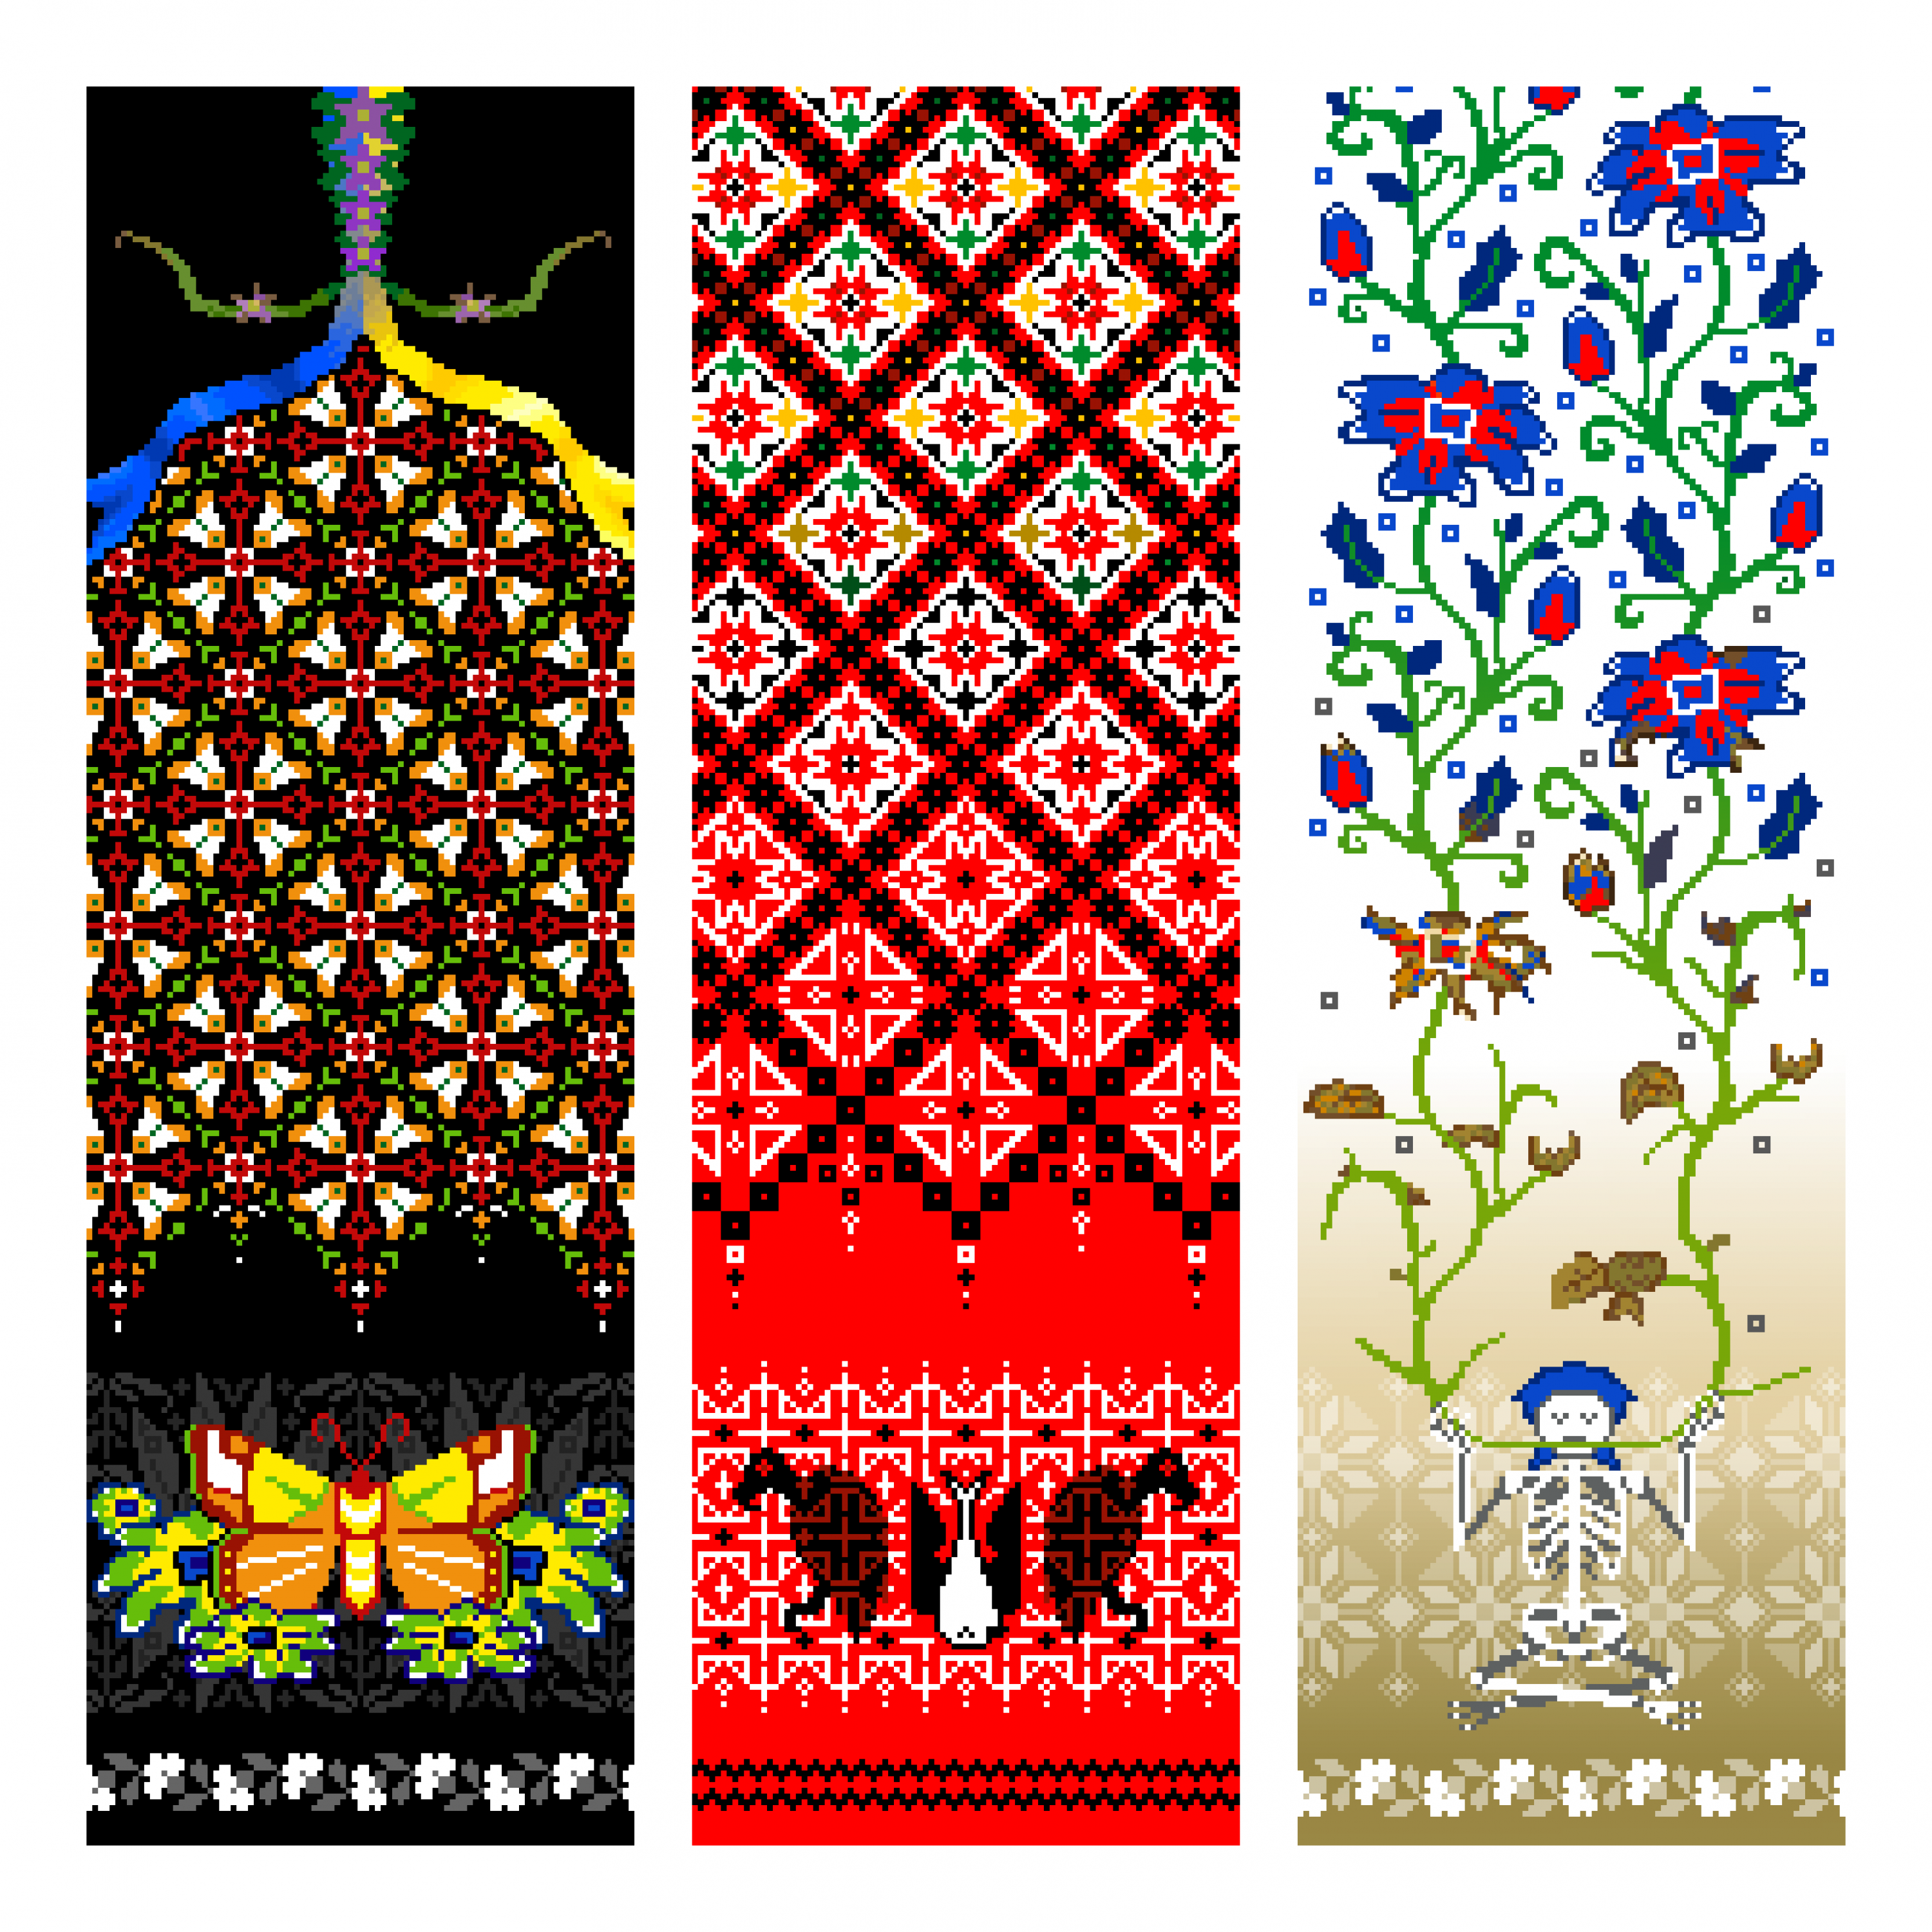 This is a picture of 3 long (portait-oriented) pixel designs based on Ukrainian embroidery. The banner on the left is mainly black with designs based on moths. The middle piece is red and black geometric design with bird imagery. The piece on the right is